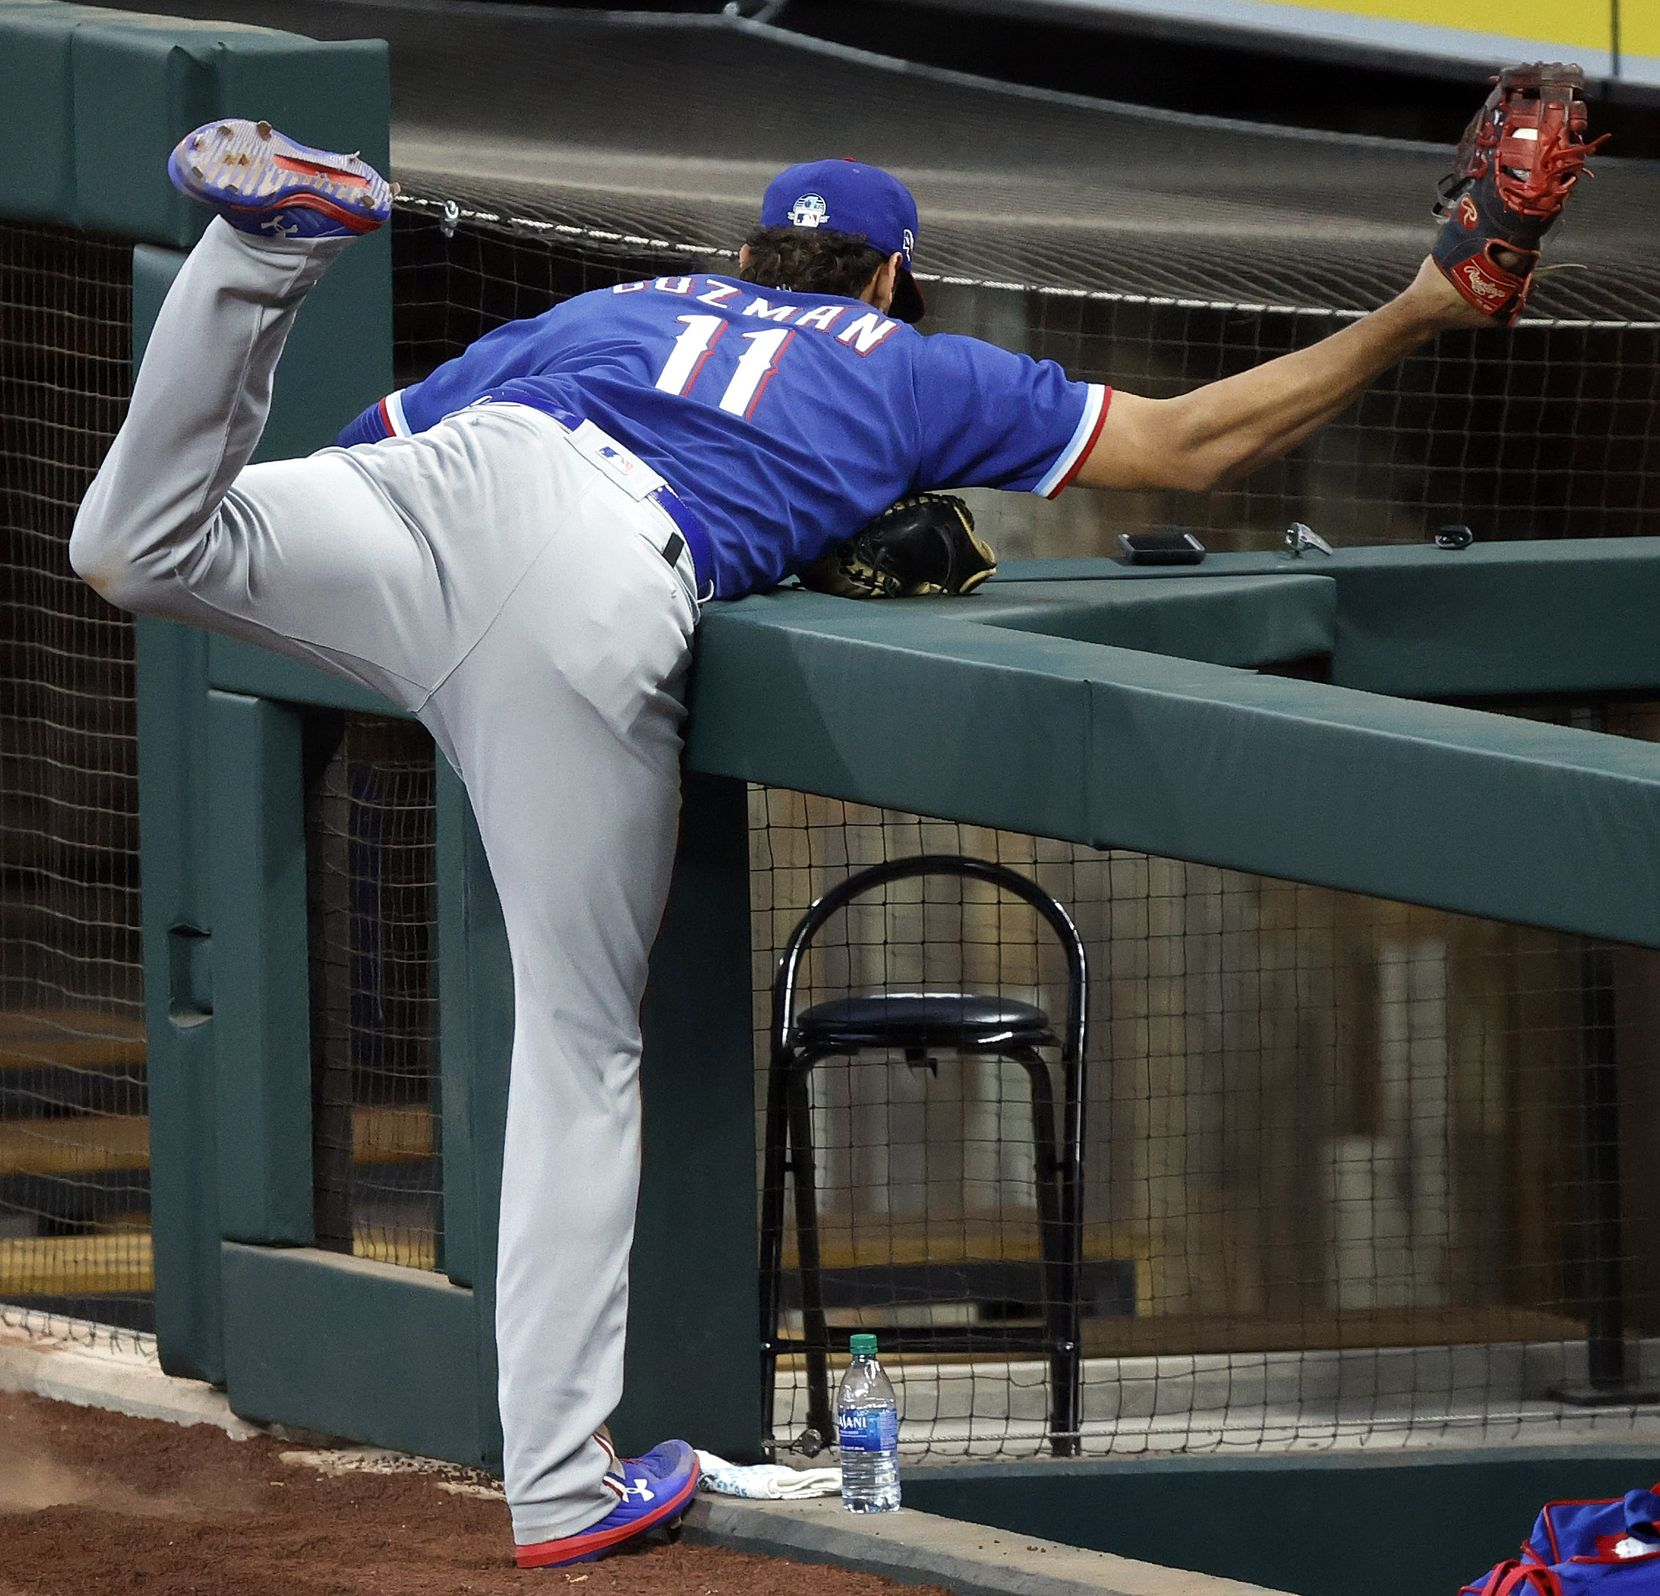 Texas Rangers first baseman Ronald Guzman reaches over the photo well railing, snaring a fly ball during a simulated game at Summer Camp inside Globe Life Field in Arlington, Texas, Thursday, July 9, 2020. (Tom Fox/The Dallas Morning News)